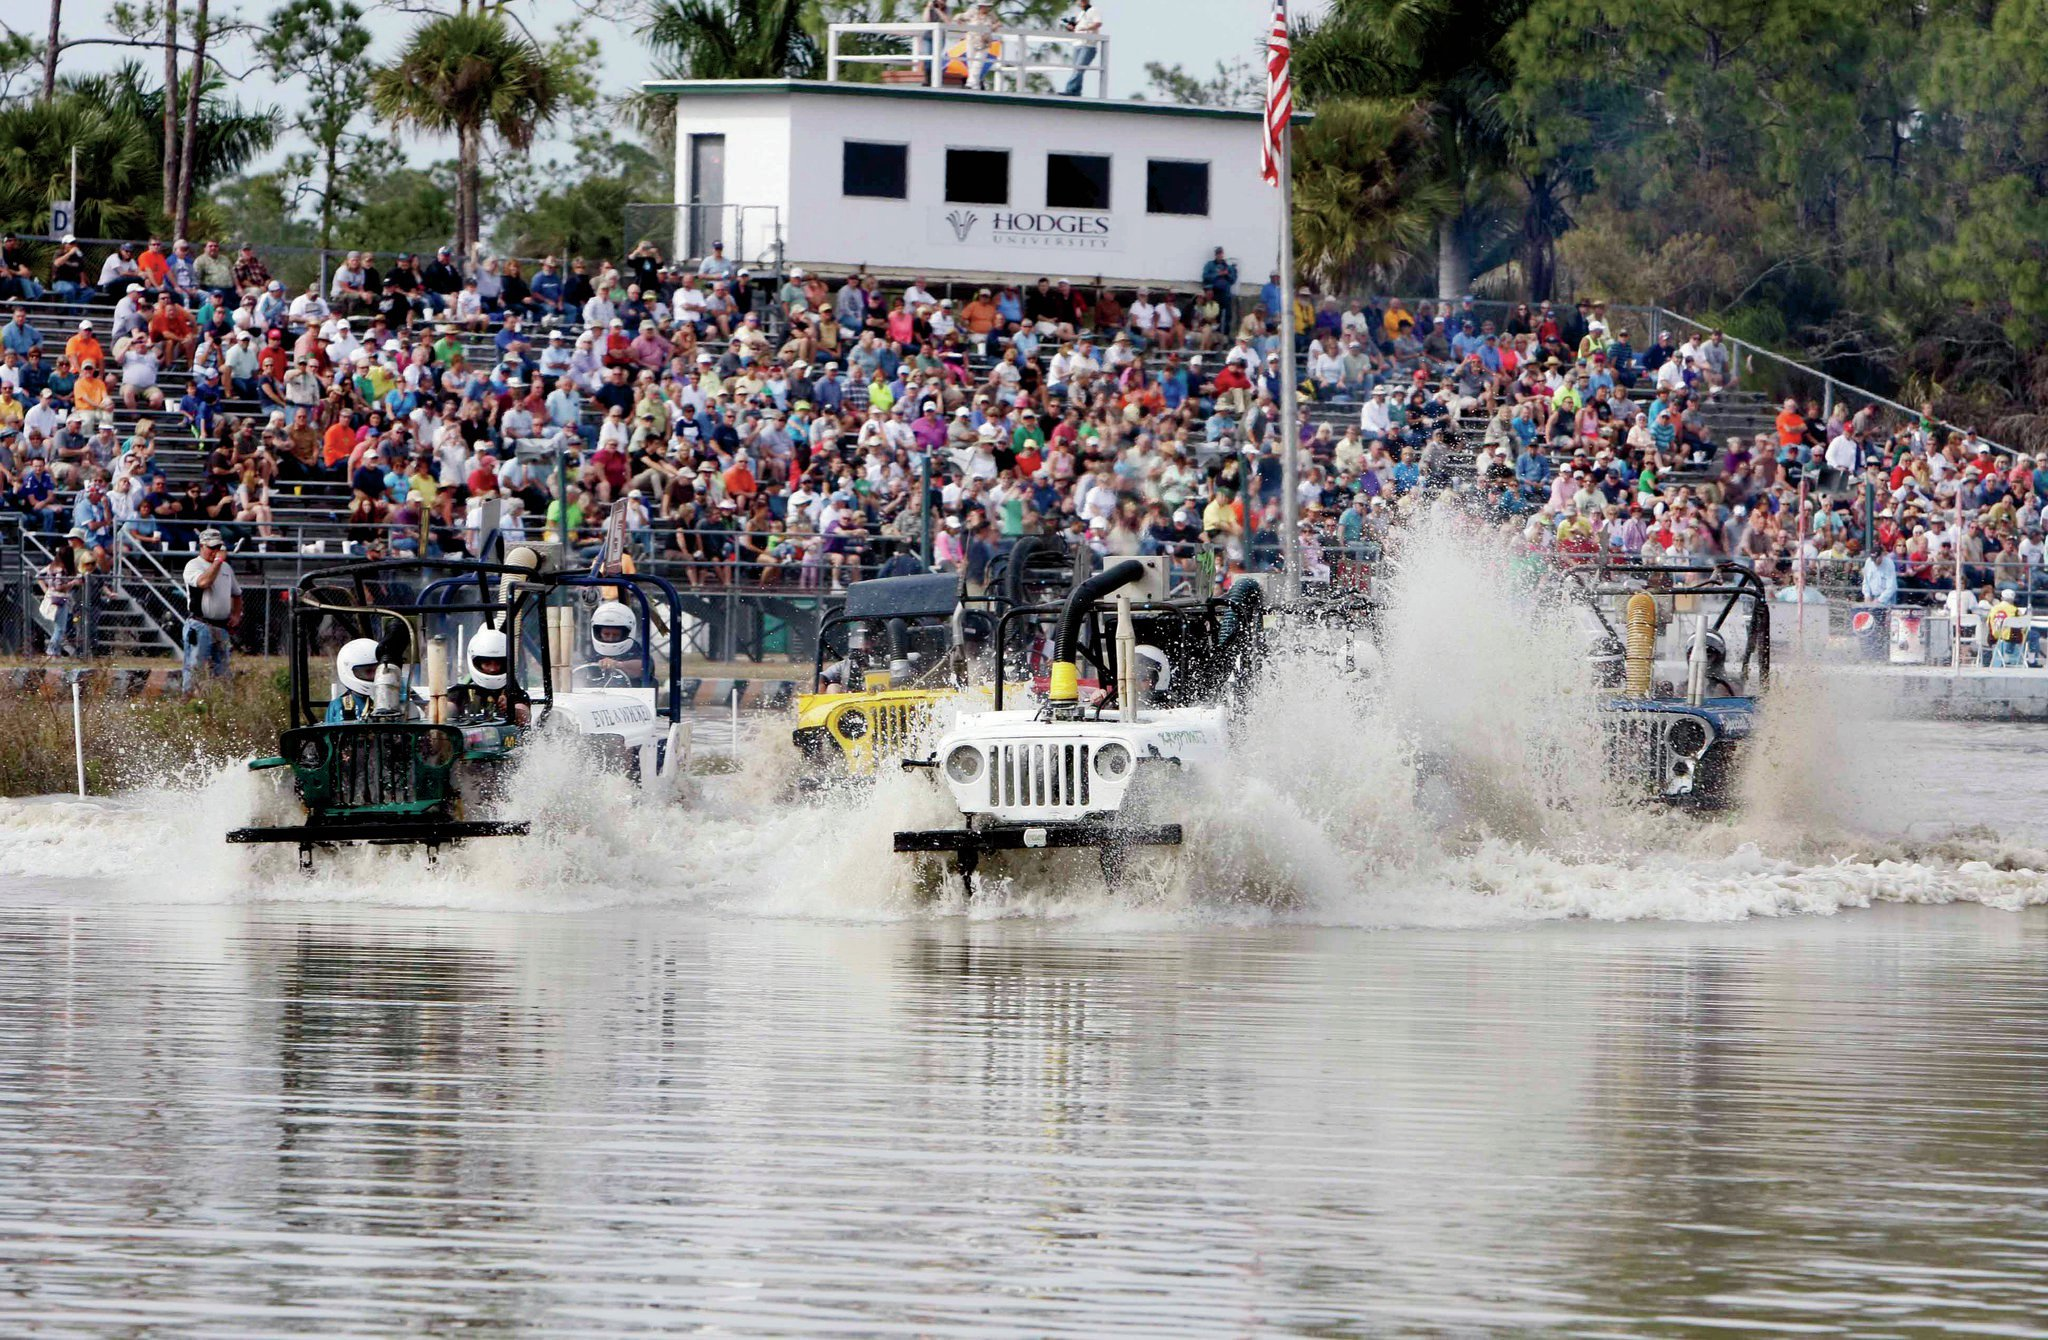 Here, a group of Jeep-class buggies navigate the course at the beginning of a race. This class uses a land-rush start from the start line. Speedy? Sorta. Fun to watch? You bet. Visuals include lots of flying water and the soundtrack of the Jeep four-cylinder engines.